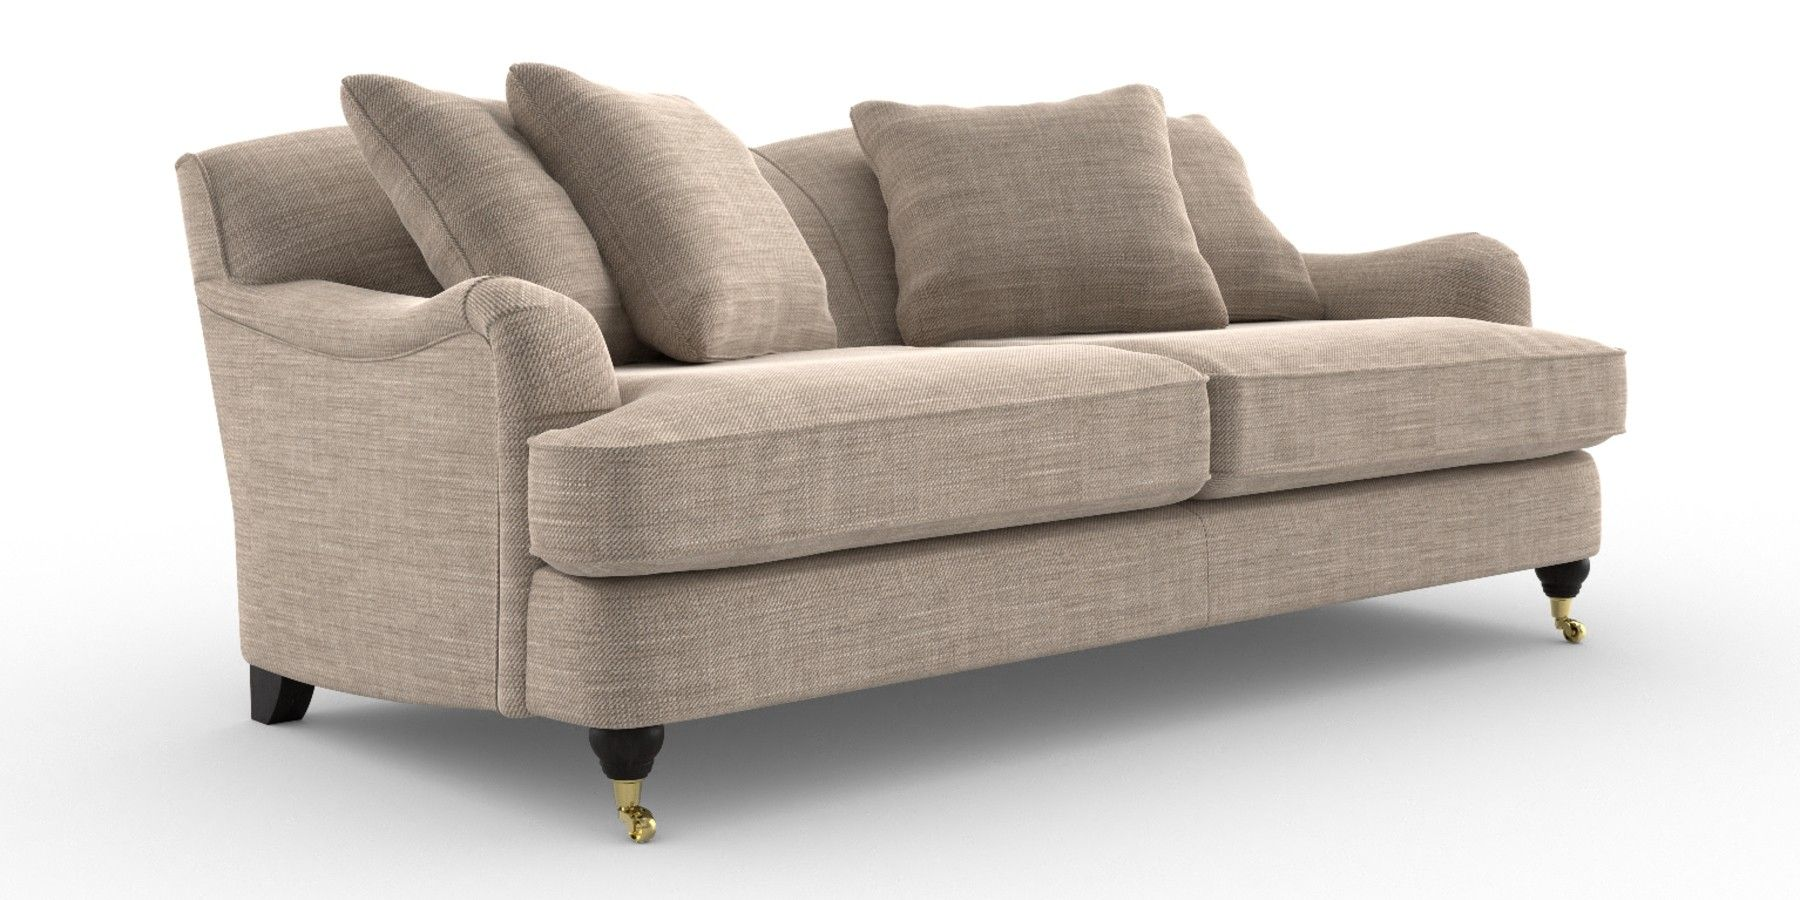 Buy Ophelia Fixed Back Large Sofa (3 Seats